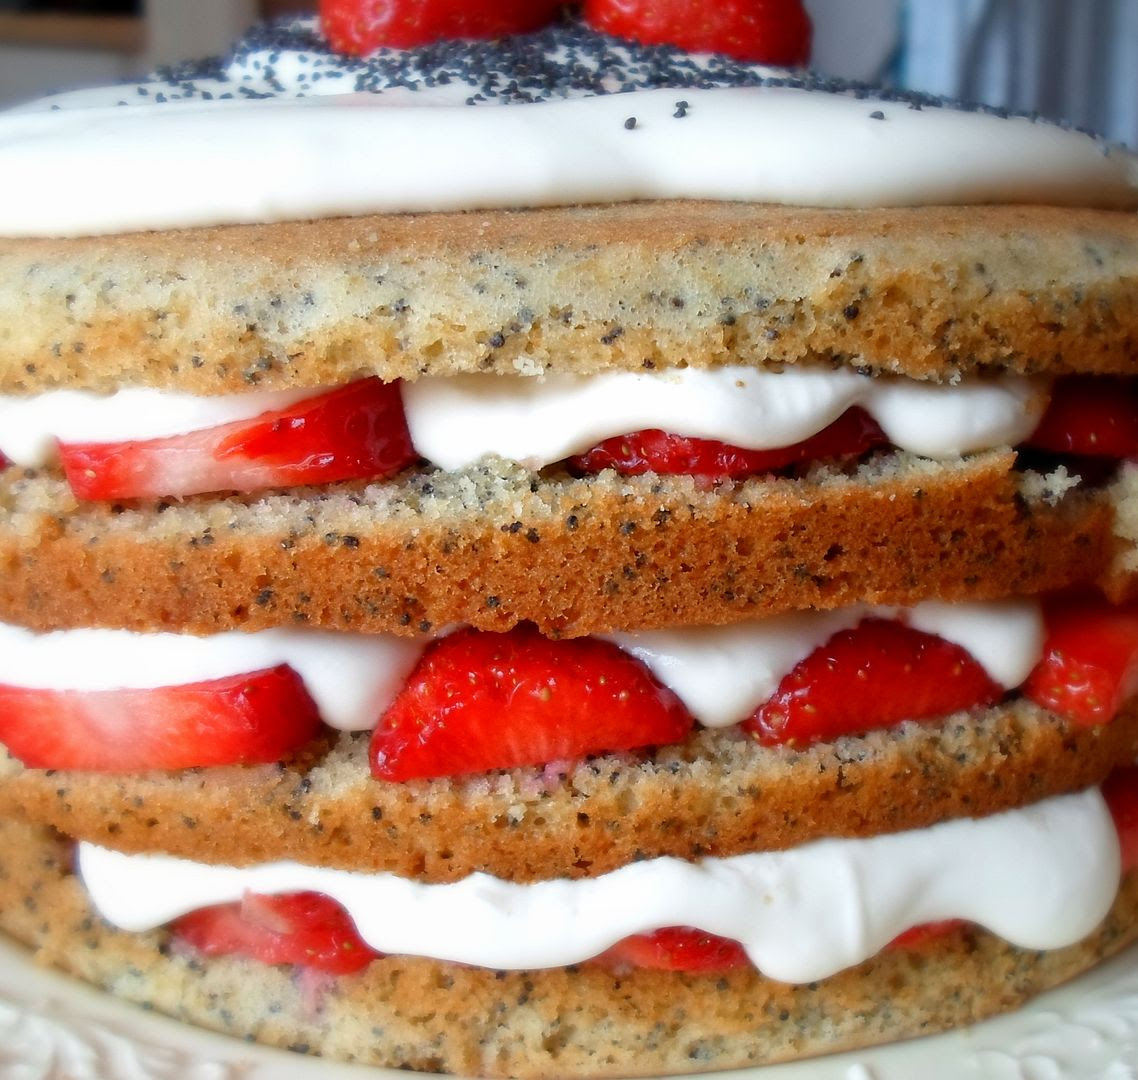 Strawberry & Poppy Seed Cake